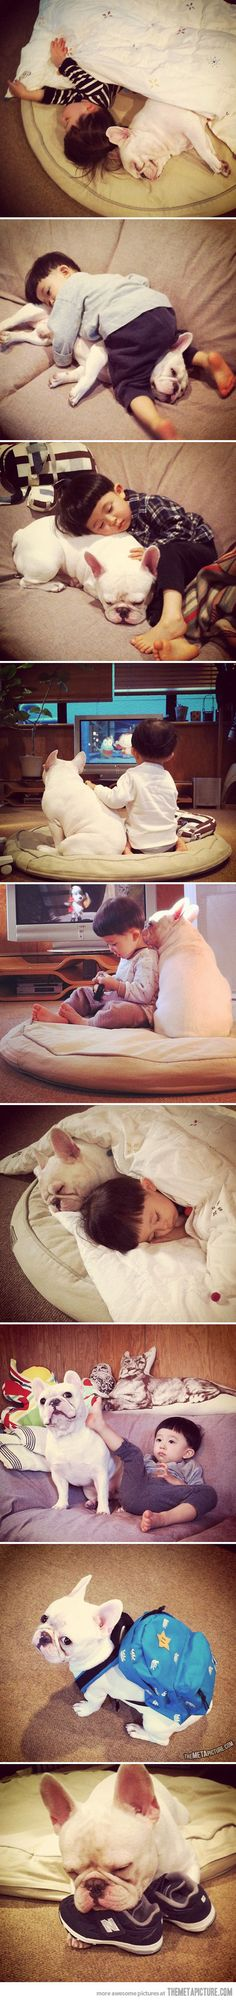 One reason why Frenchies are the best dogs ♥ / Bouledogue français / French bulldog